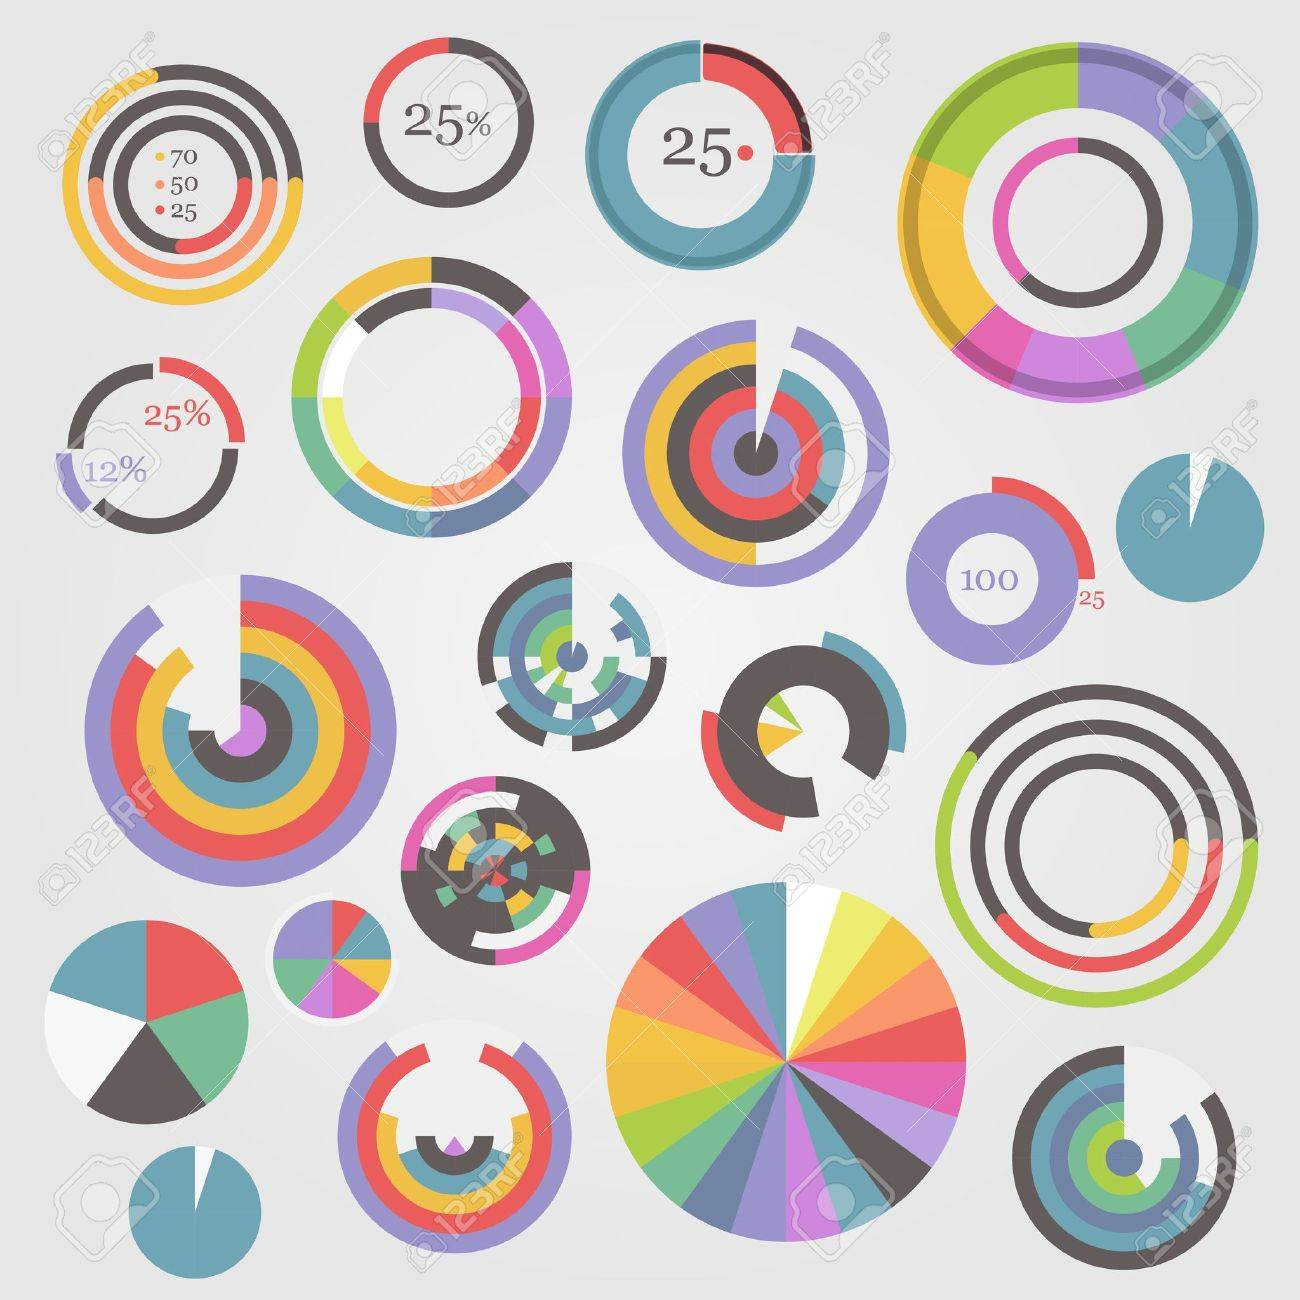 Circle chart templates collection Stock Vector - 16176531